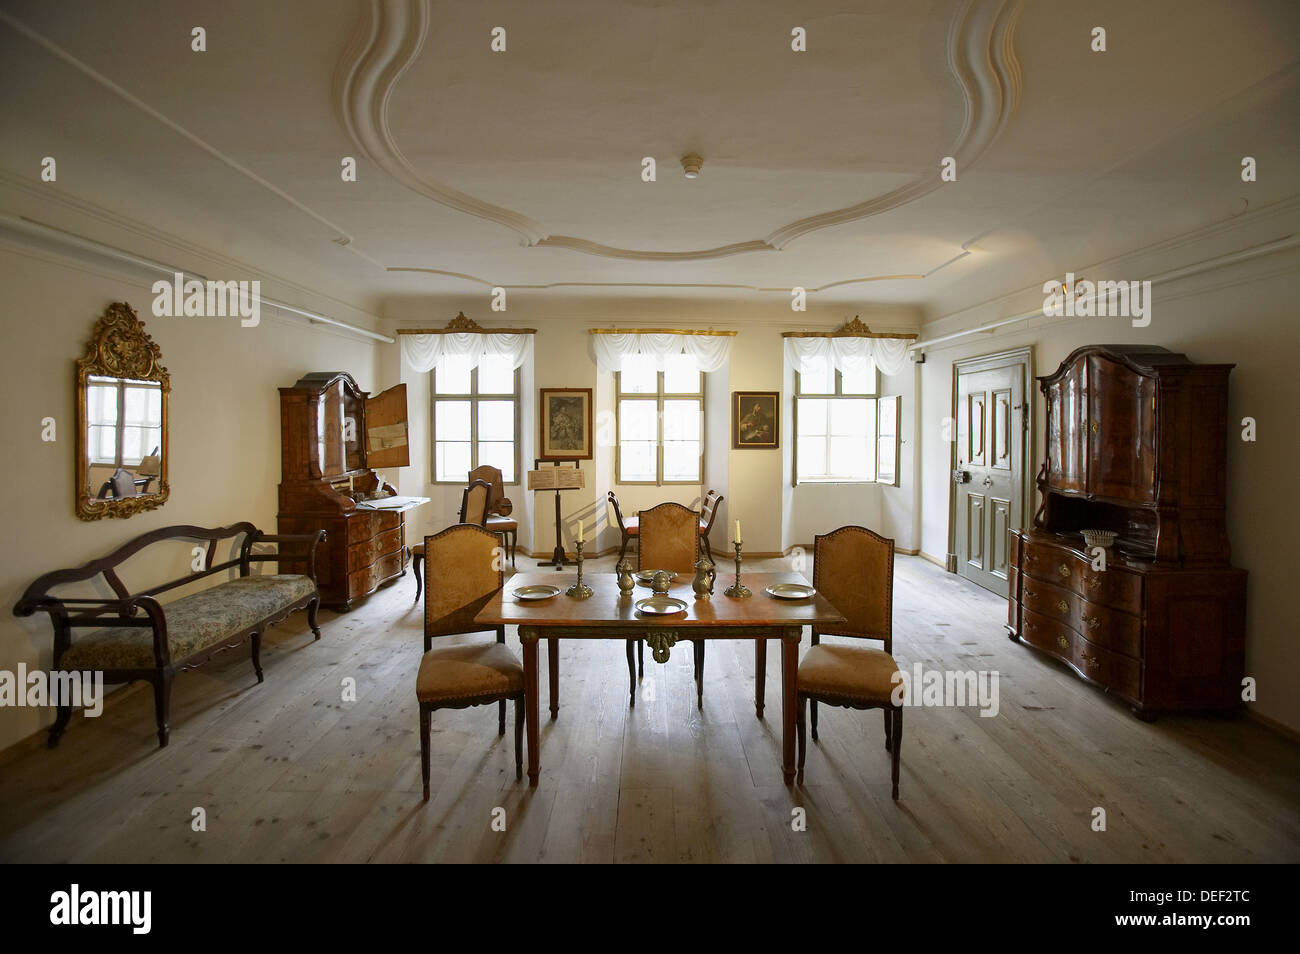 old fashioned birthing chairs simply bows and chair covers northumberland mozarts birth house salzburg austria stock photo